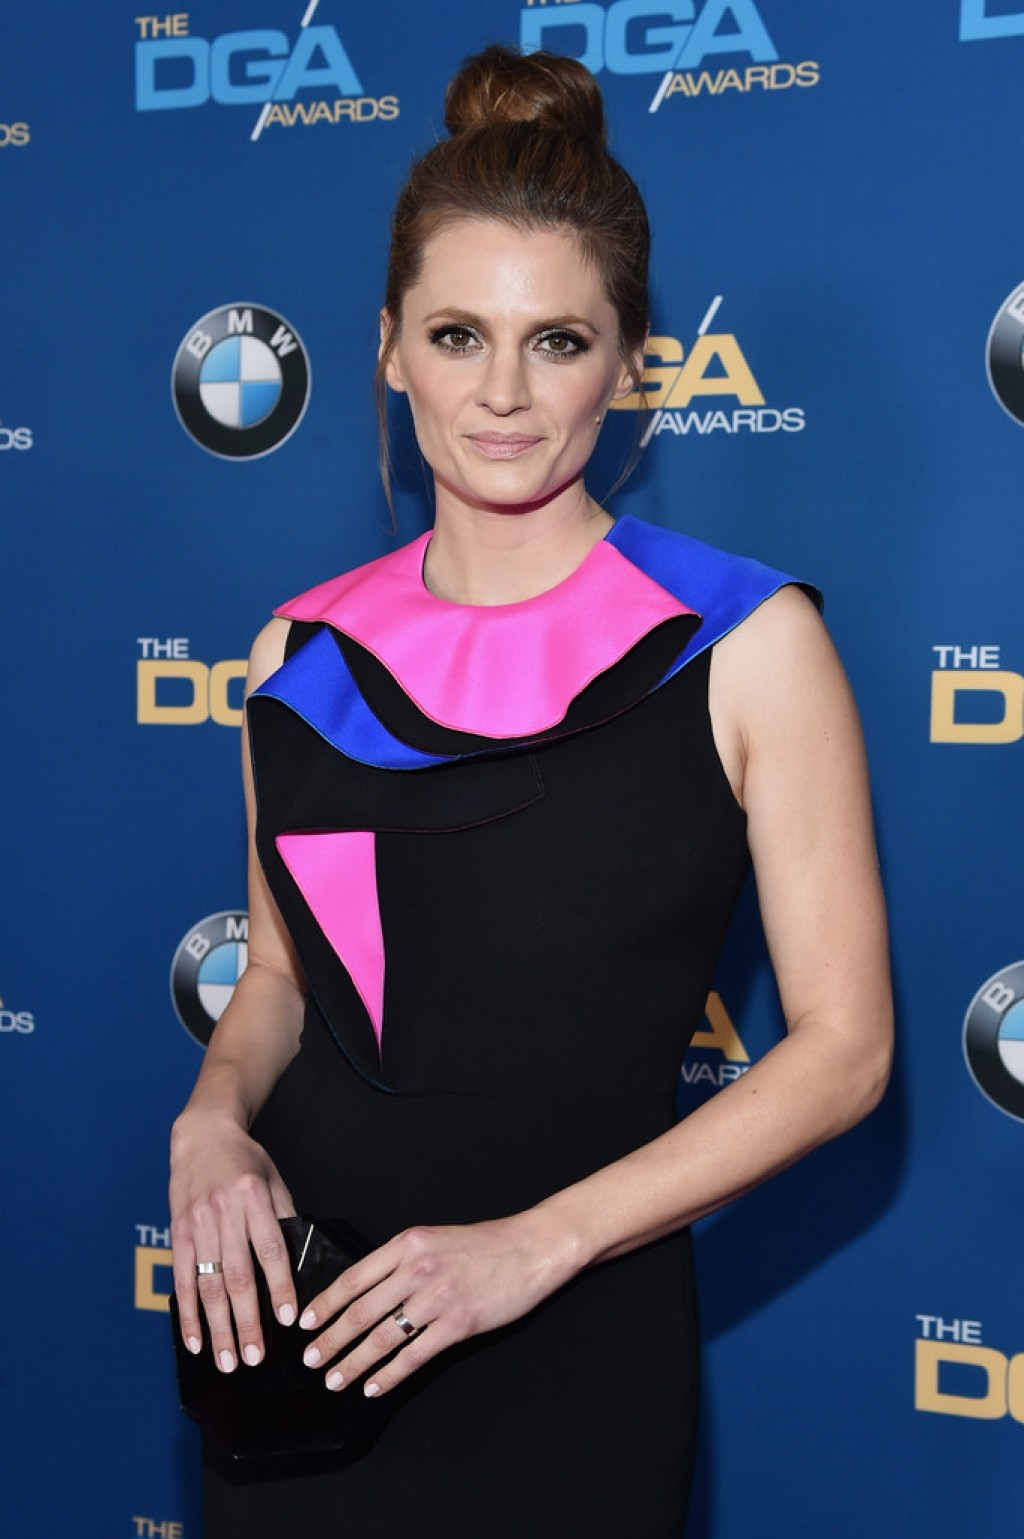 stana-katic-2016-dga-makeup-1024x1539